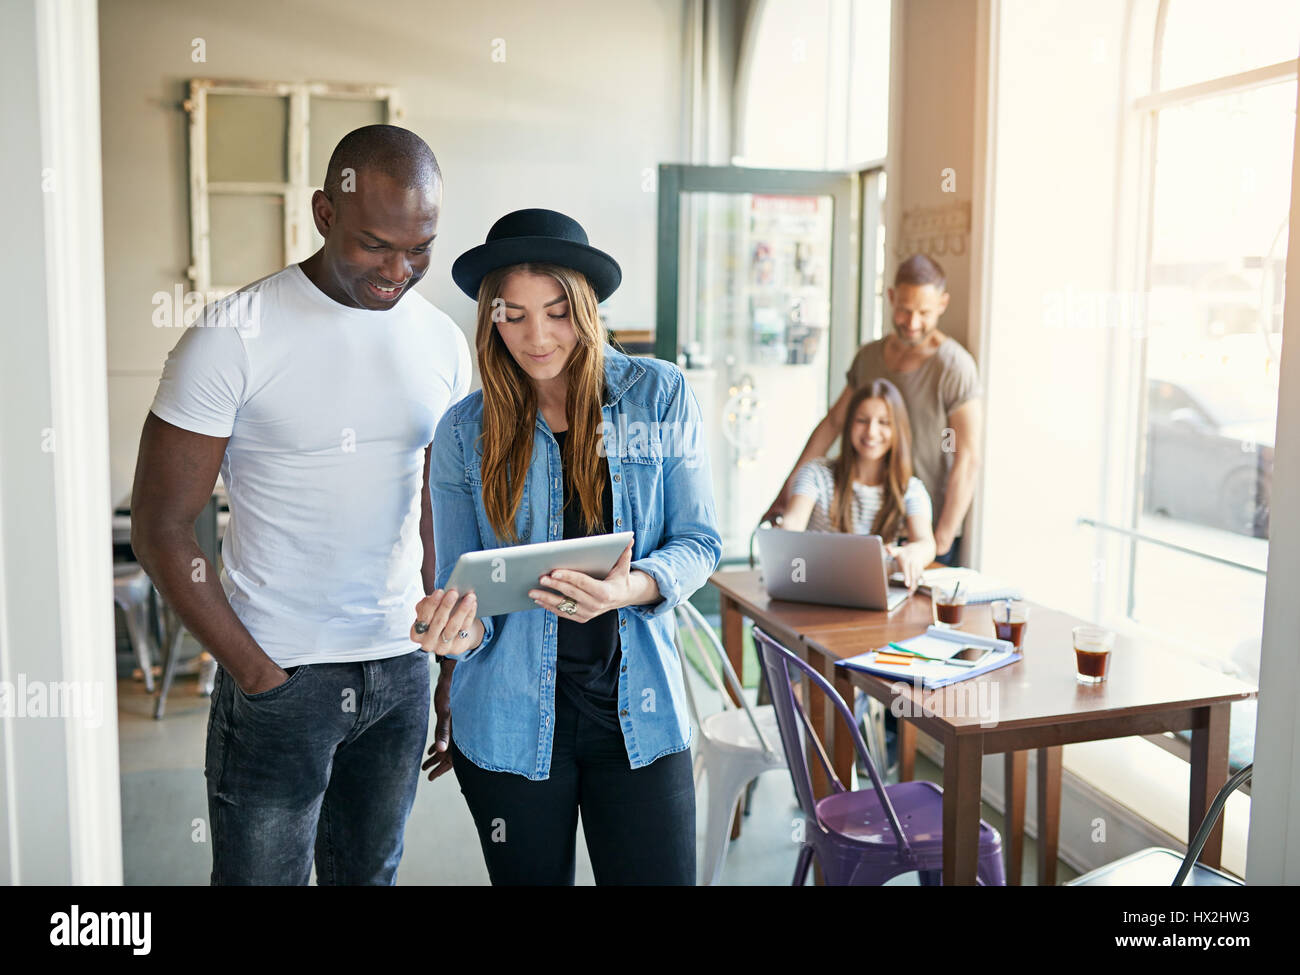 Young stylish female sharing something on tablet with male co-worker with other people on background in office. - Stock Image